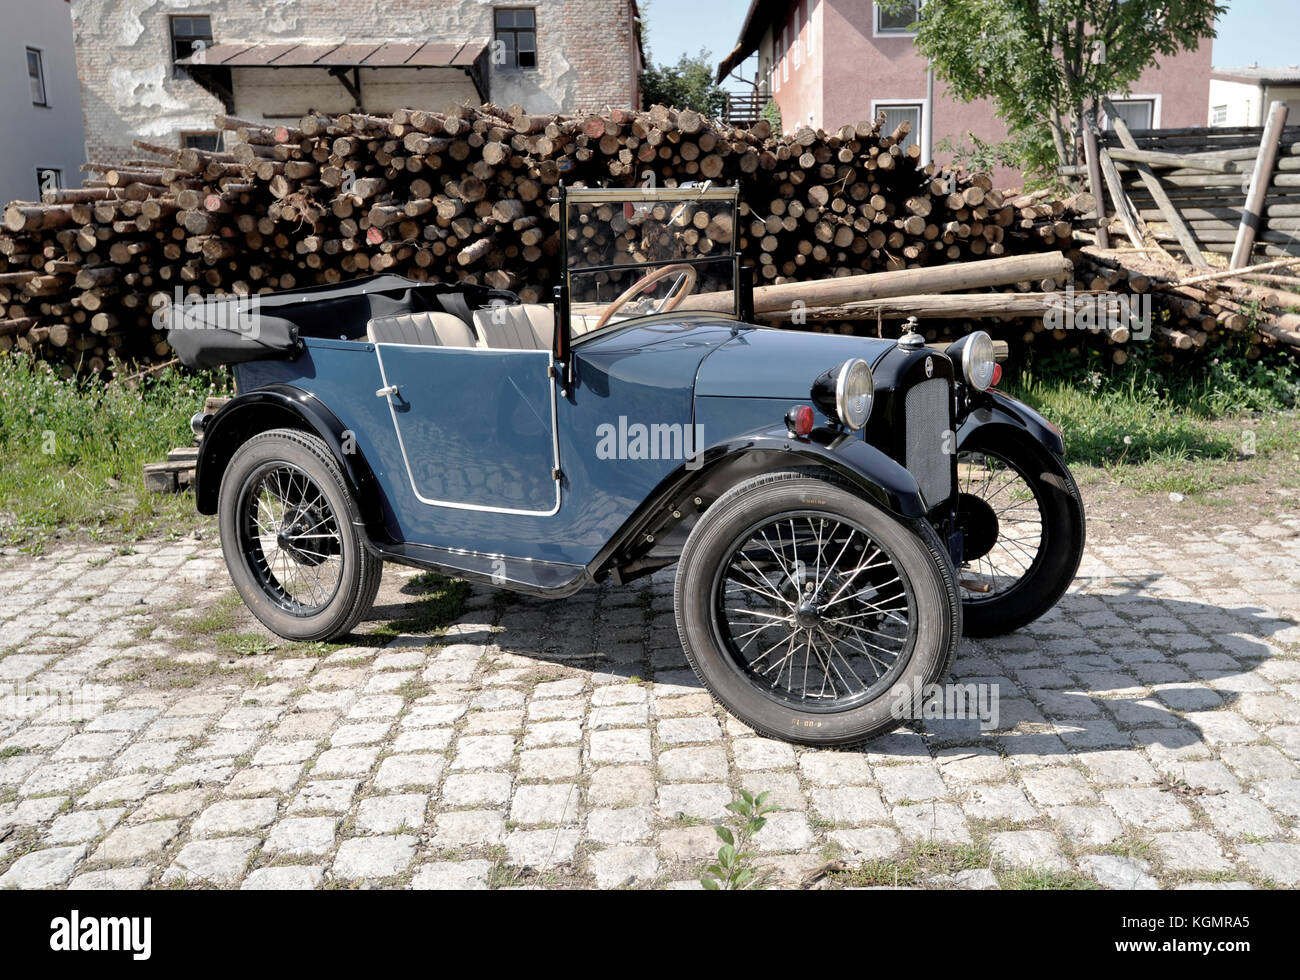 First Vehicle Combustion Engine Stock Photos & First Vehicle ...